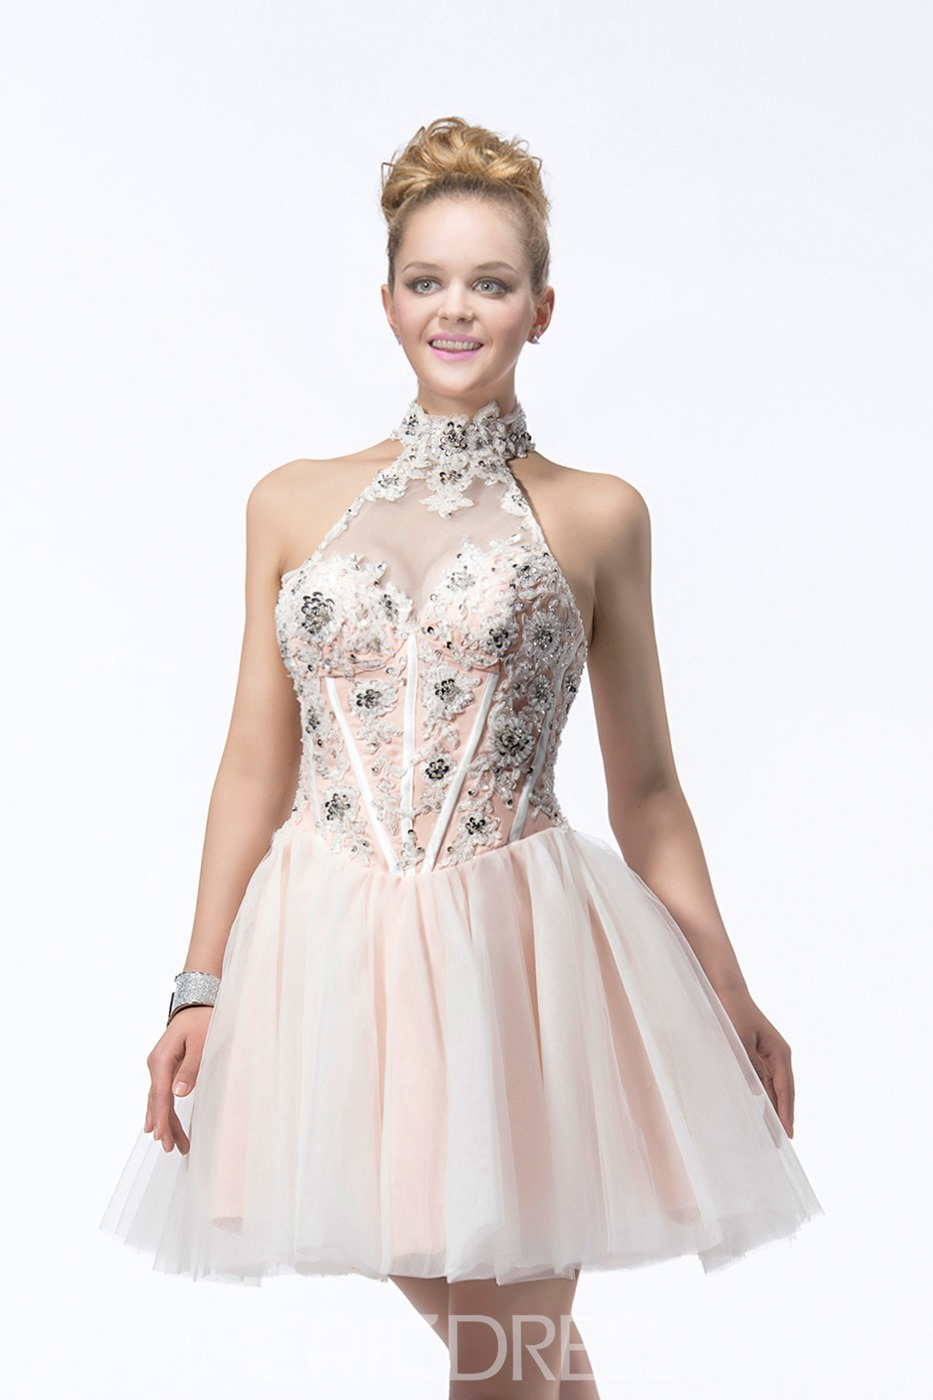 Latest A-line Sleeveless Appliques&Sequins Jewel Neck Short/Mini Length Cocktail/Prom Dress